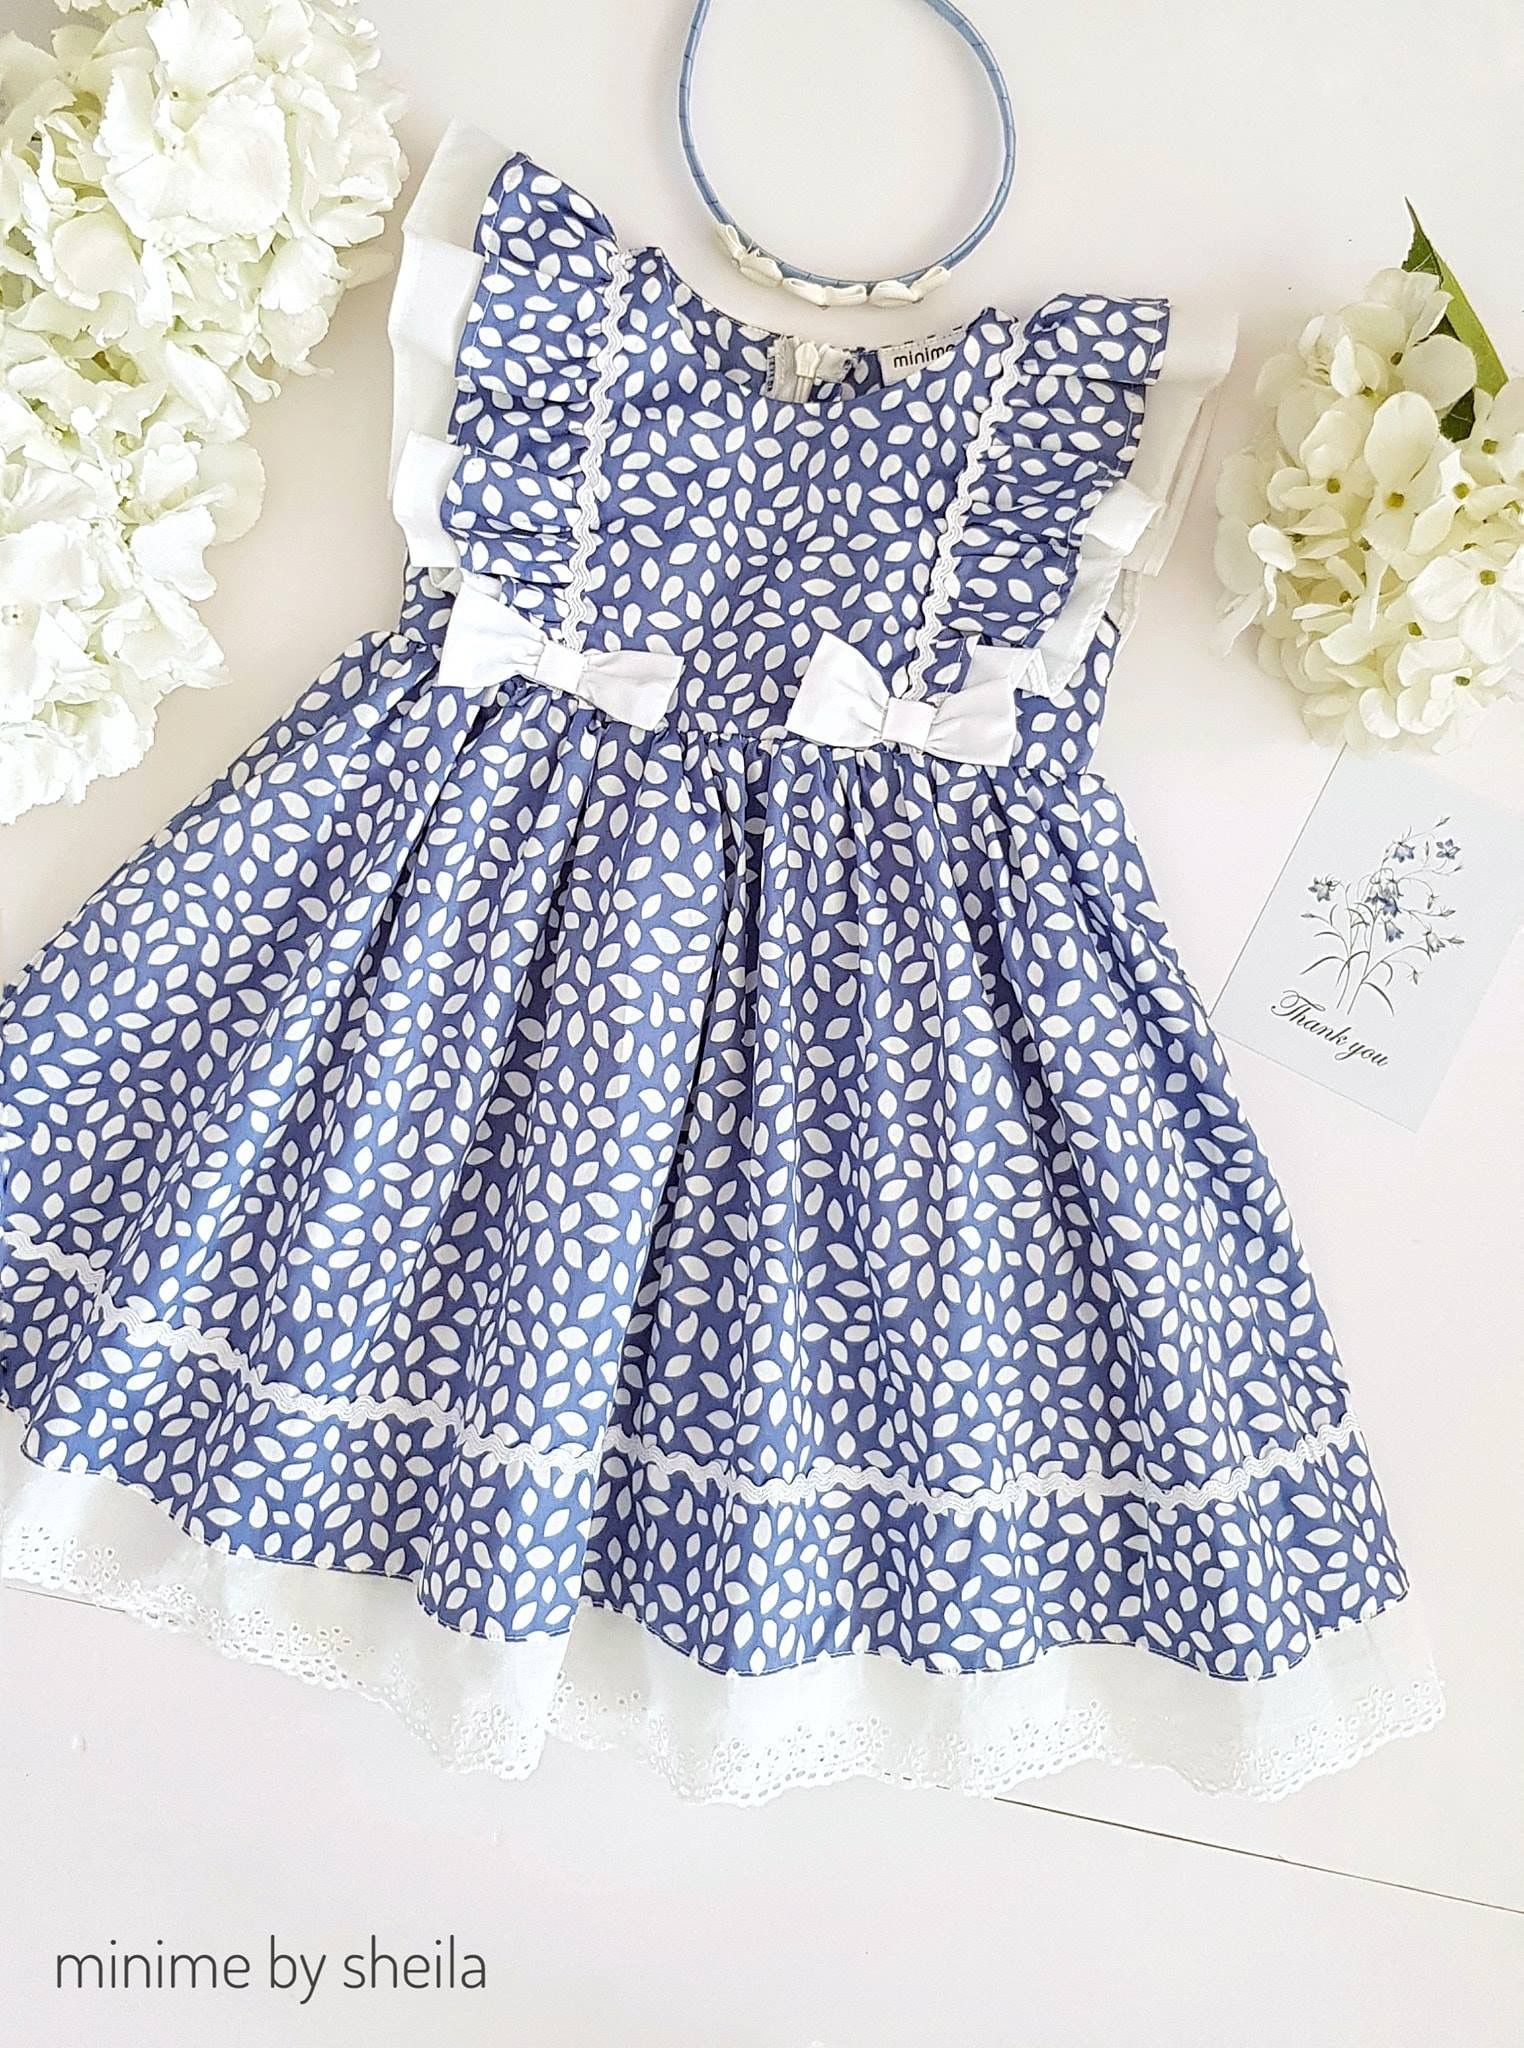 6+ Girl summer dresses ideas  dresses, summer dresses, girl outfits